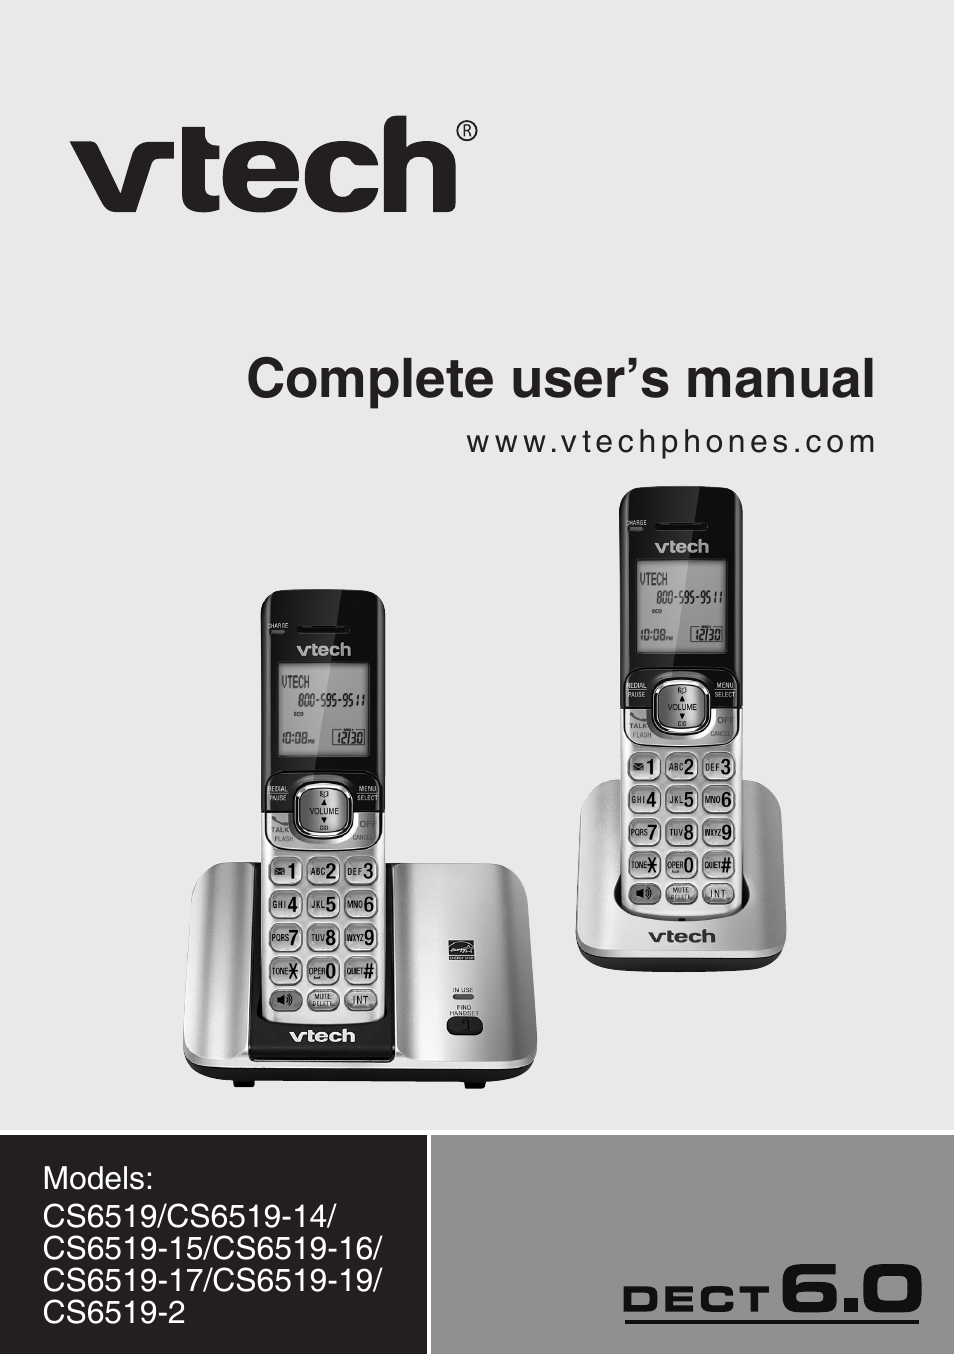 vtech phone answering machine manual how to and user guide rh taxibermuda co Uniden 2.4 GHz Cordless Phone Panasonic 2.4Ghz Cordless Phone